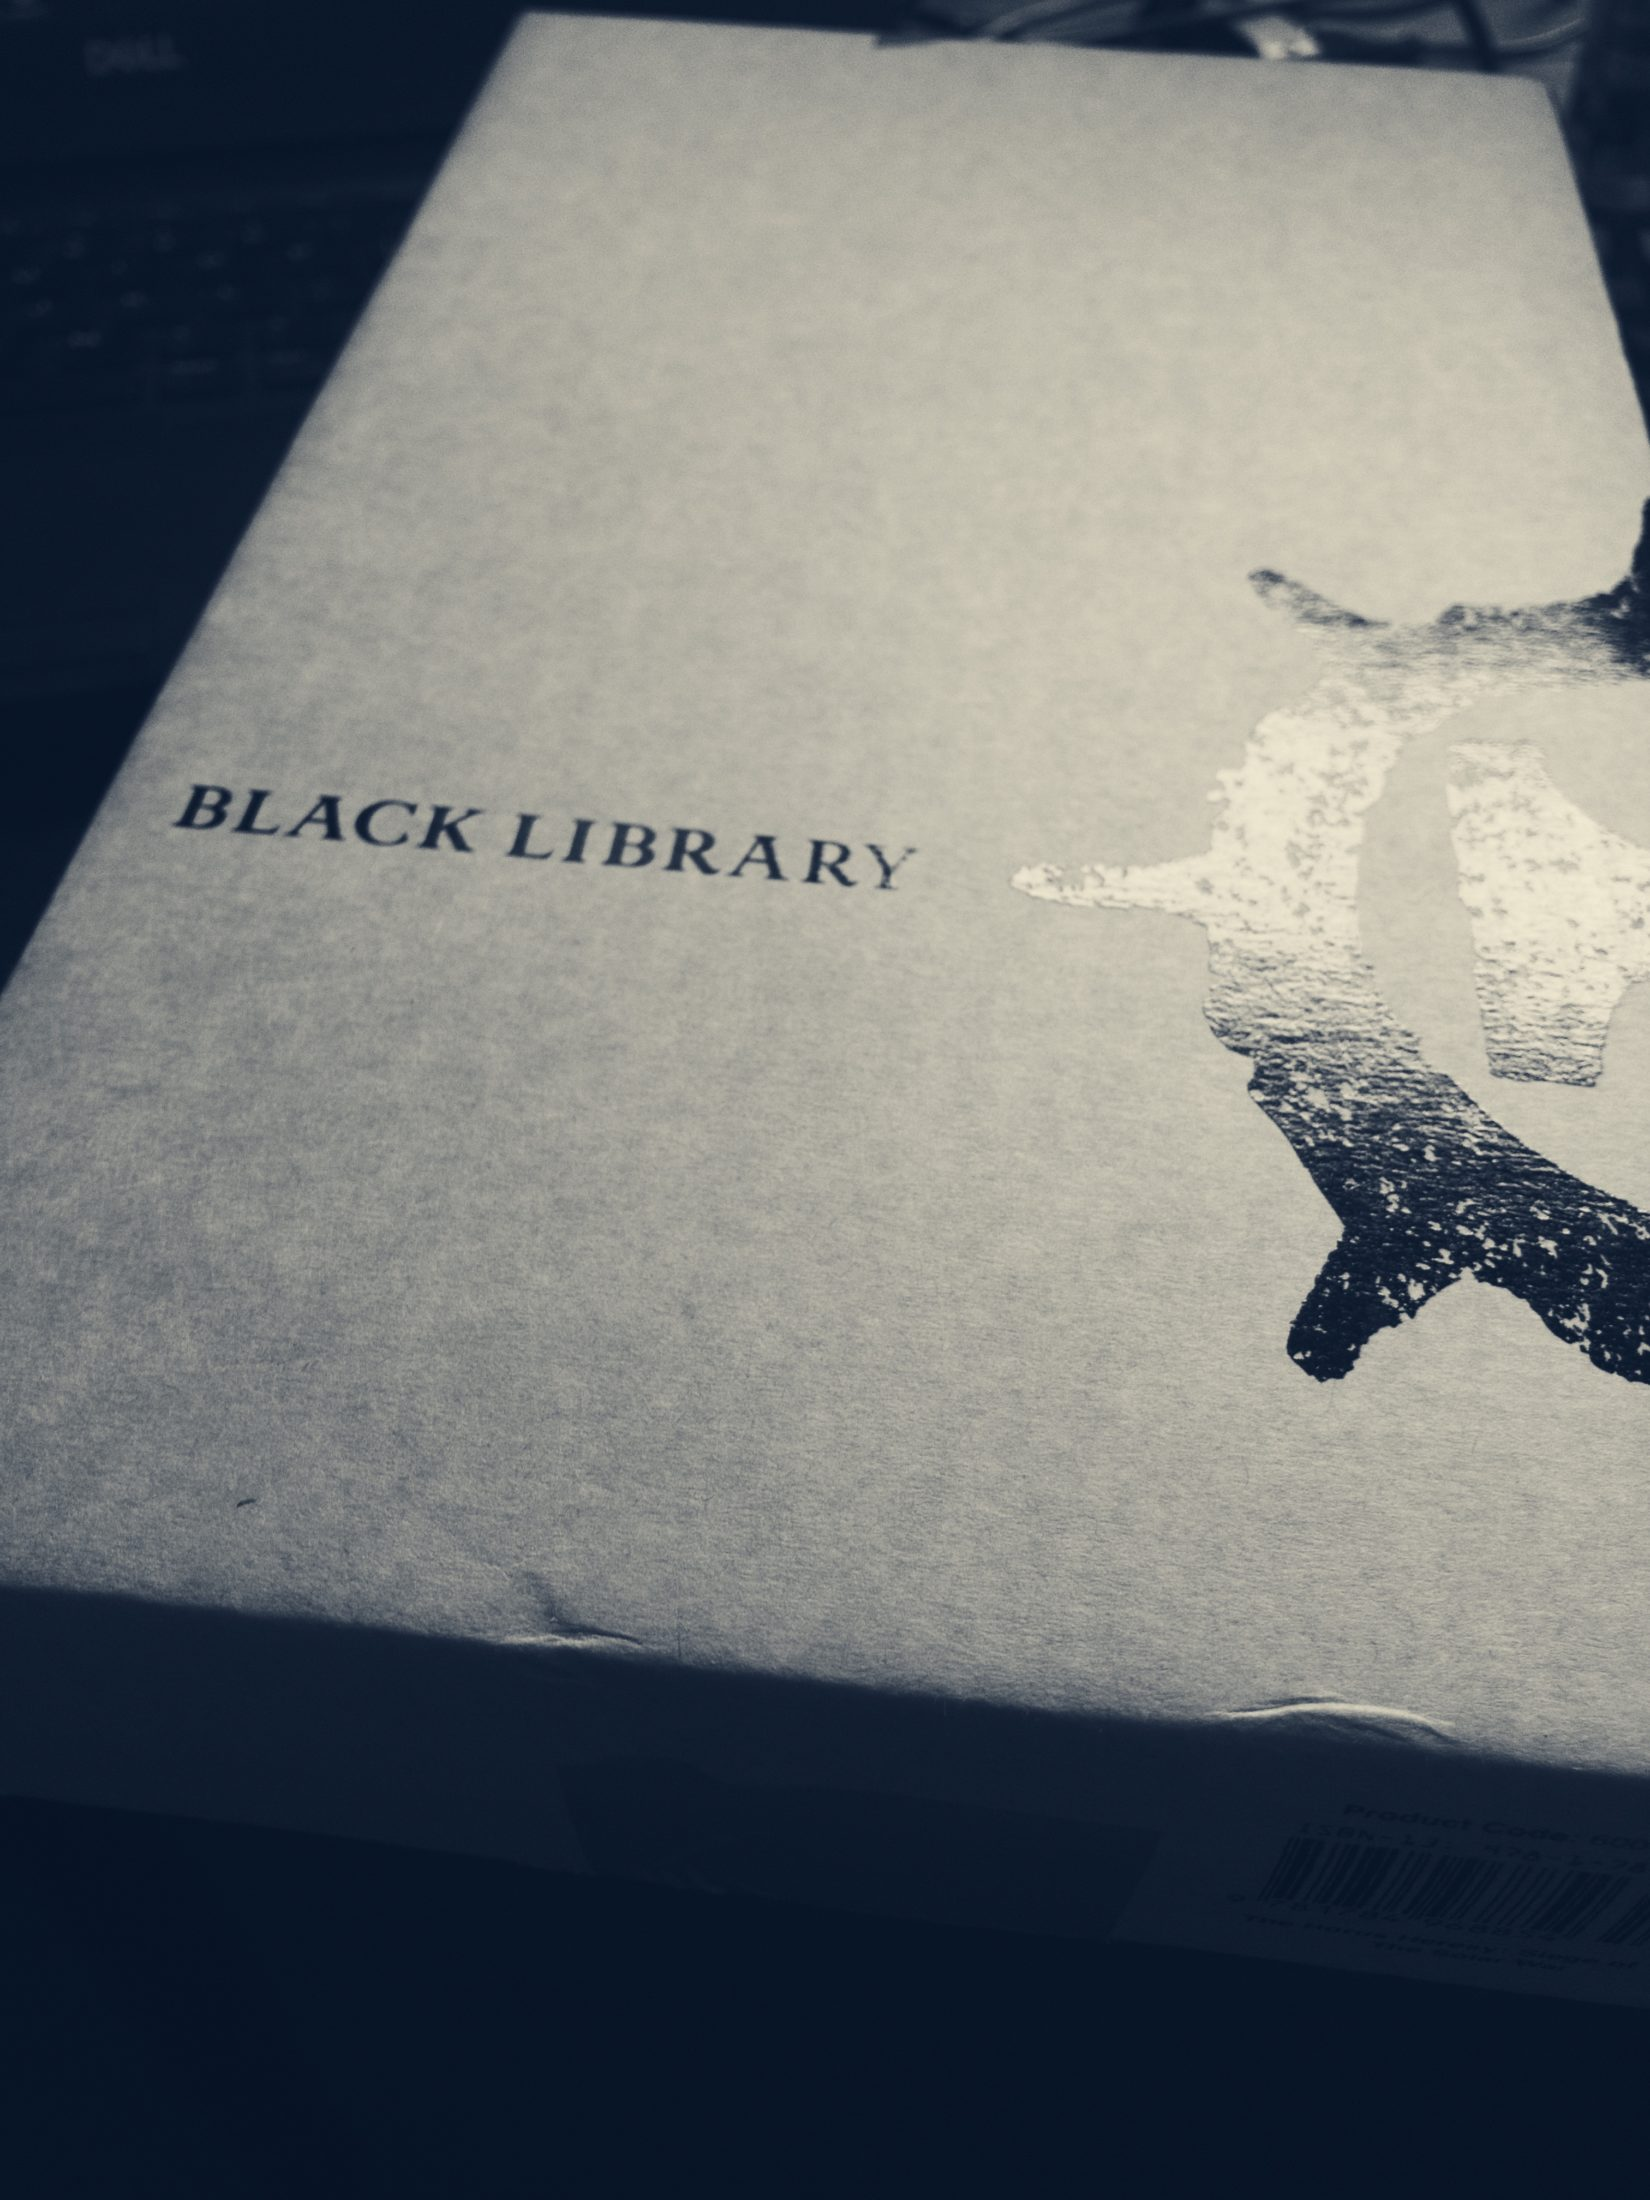 Black Library packaging